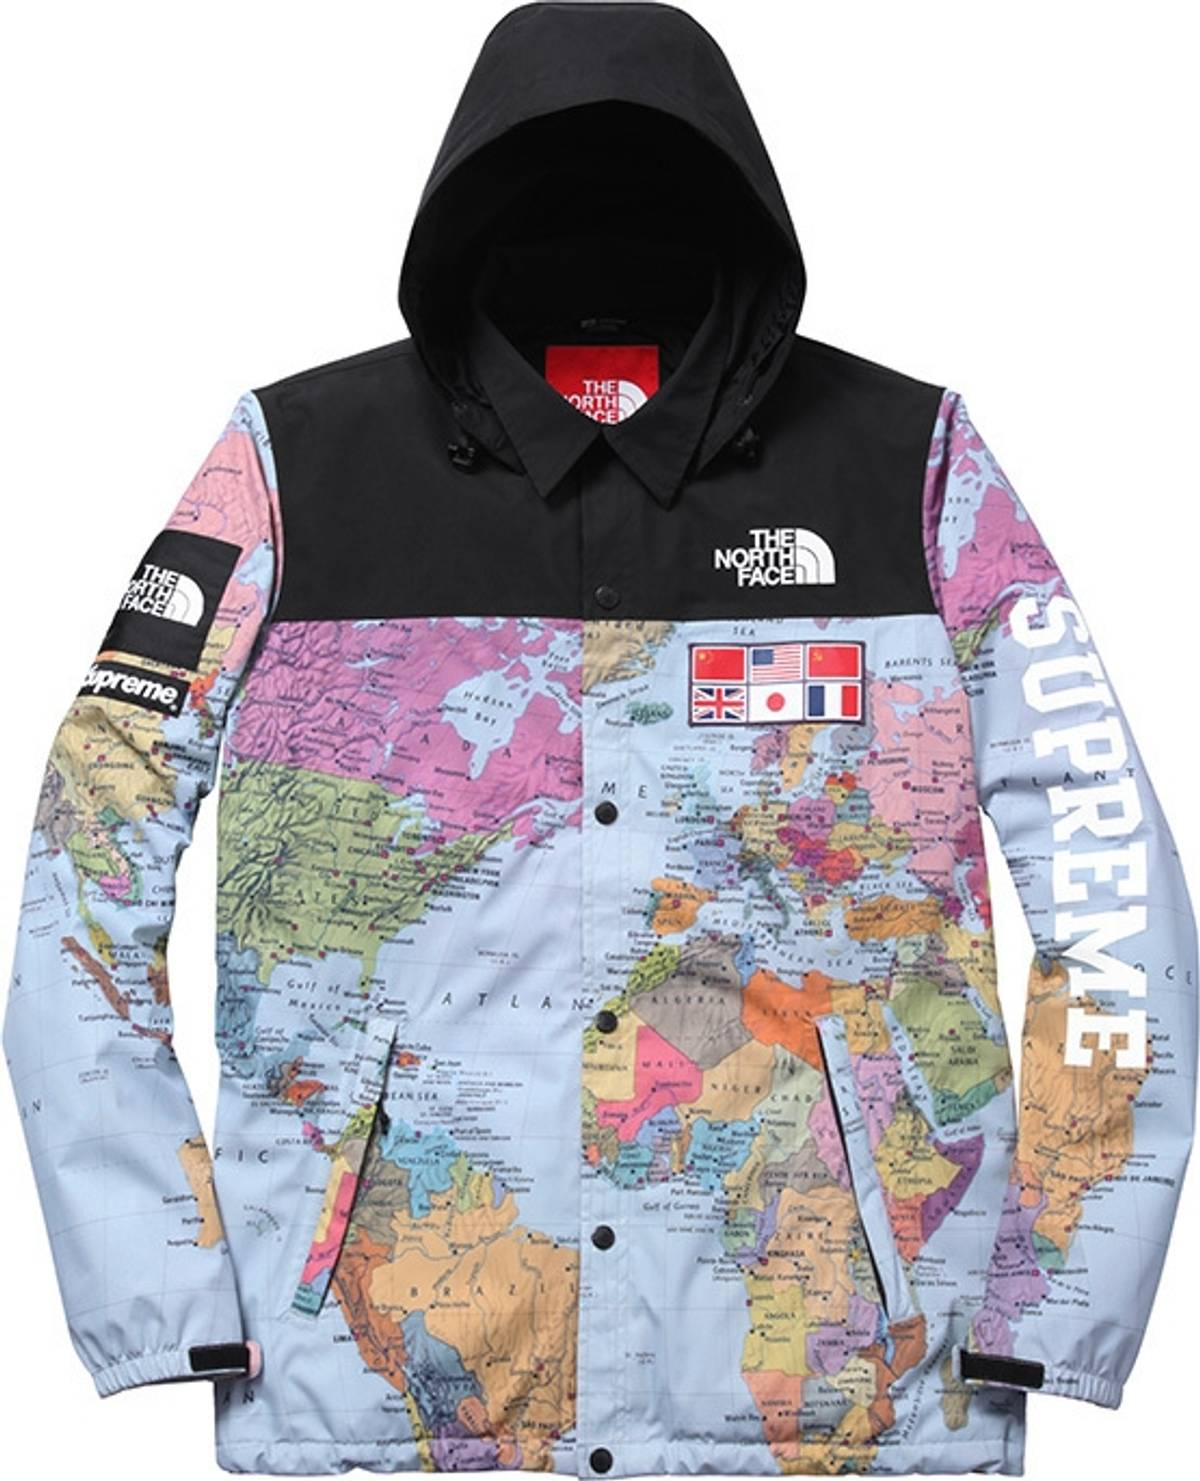 e01d9a2c3c Supreme Supreme X The North Face Worldwide Map Jacket Size s - Raincoats  for Sale - Grailed